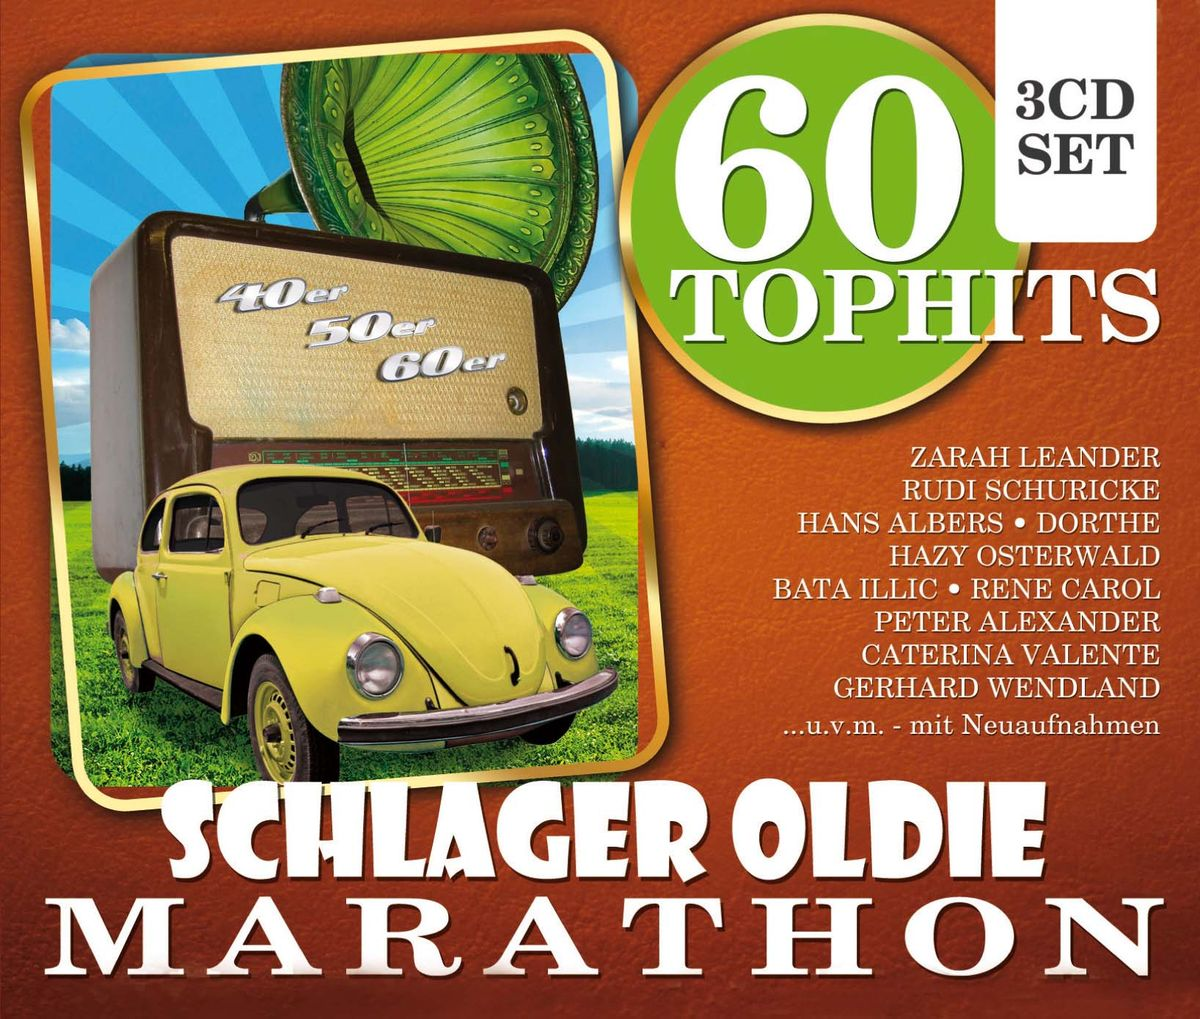 60 Top Hits Schlager Oldie Mar (3 CD) dance top hits 6 4 cd